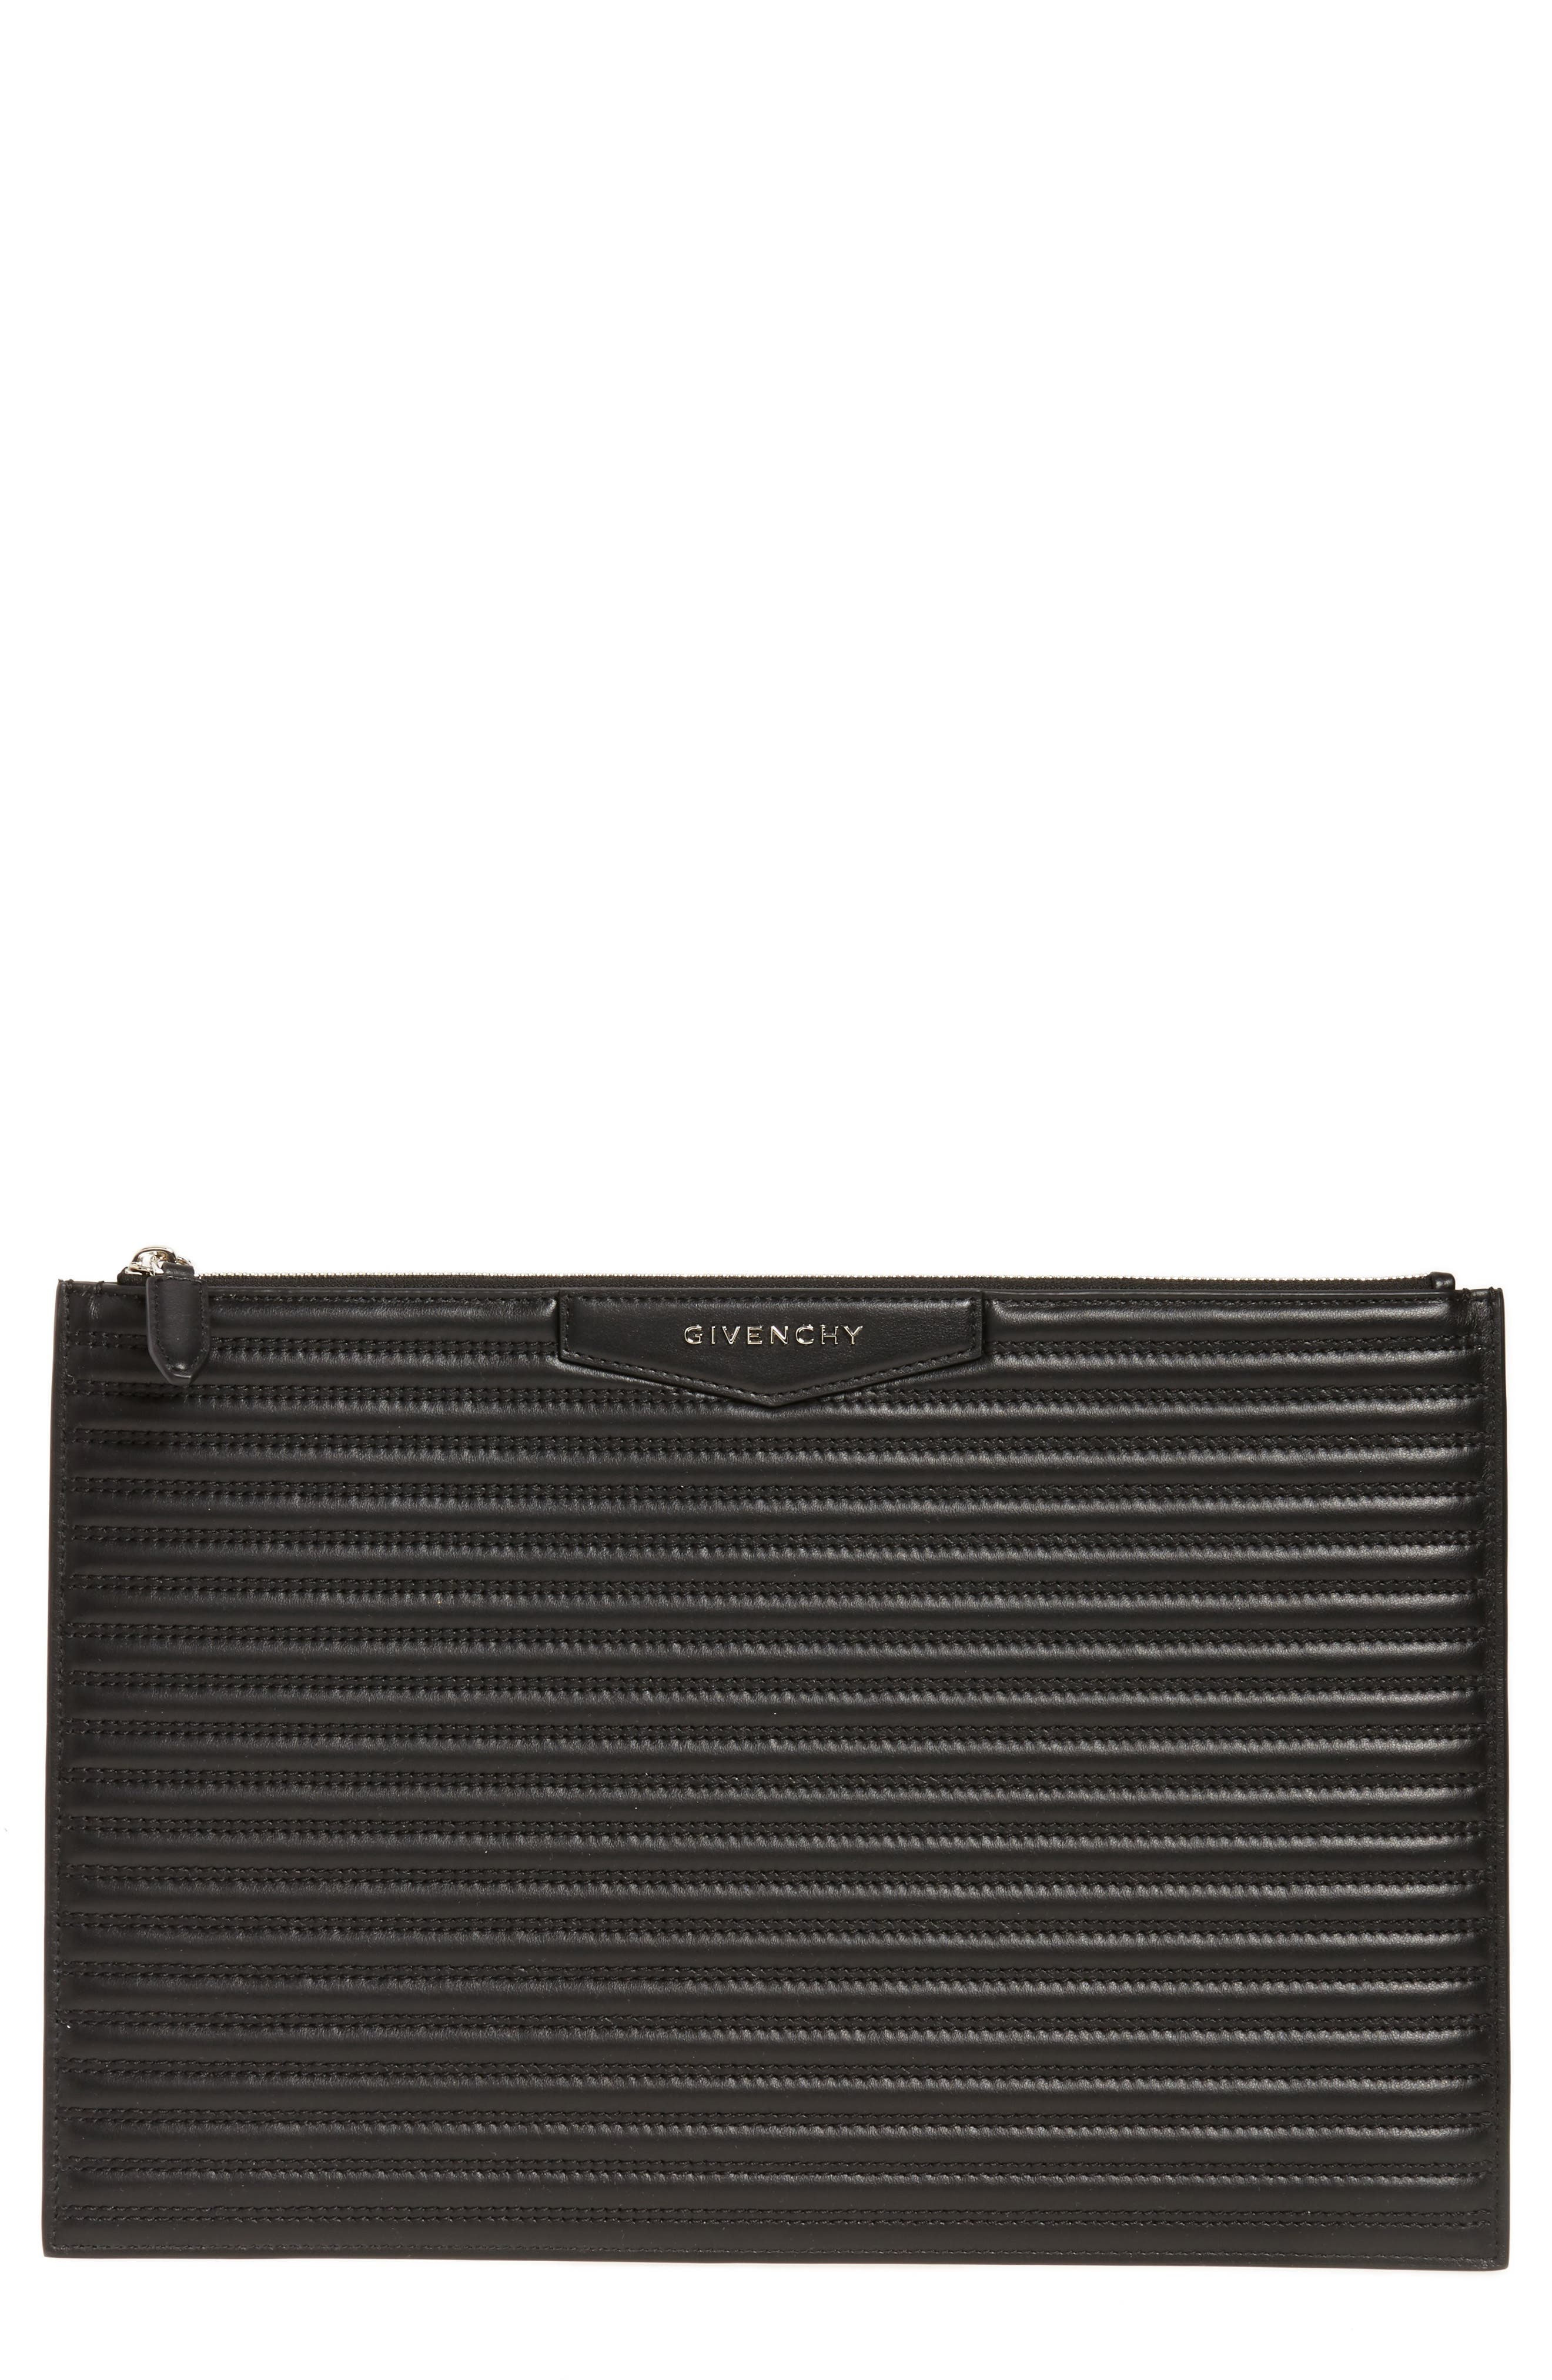 Main Image - Givenchy Antigona Quilted Leather Pouch